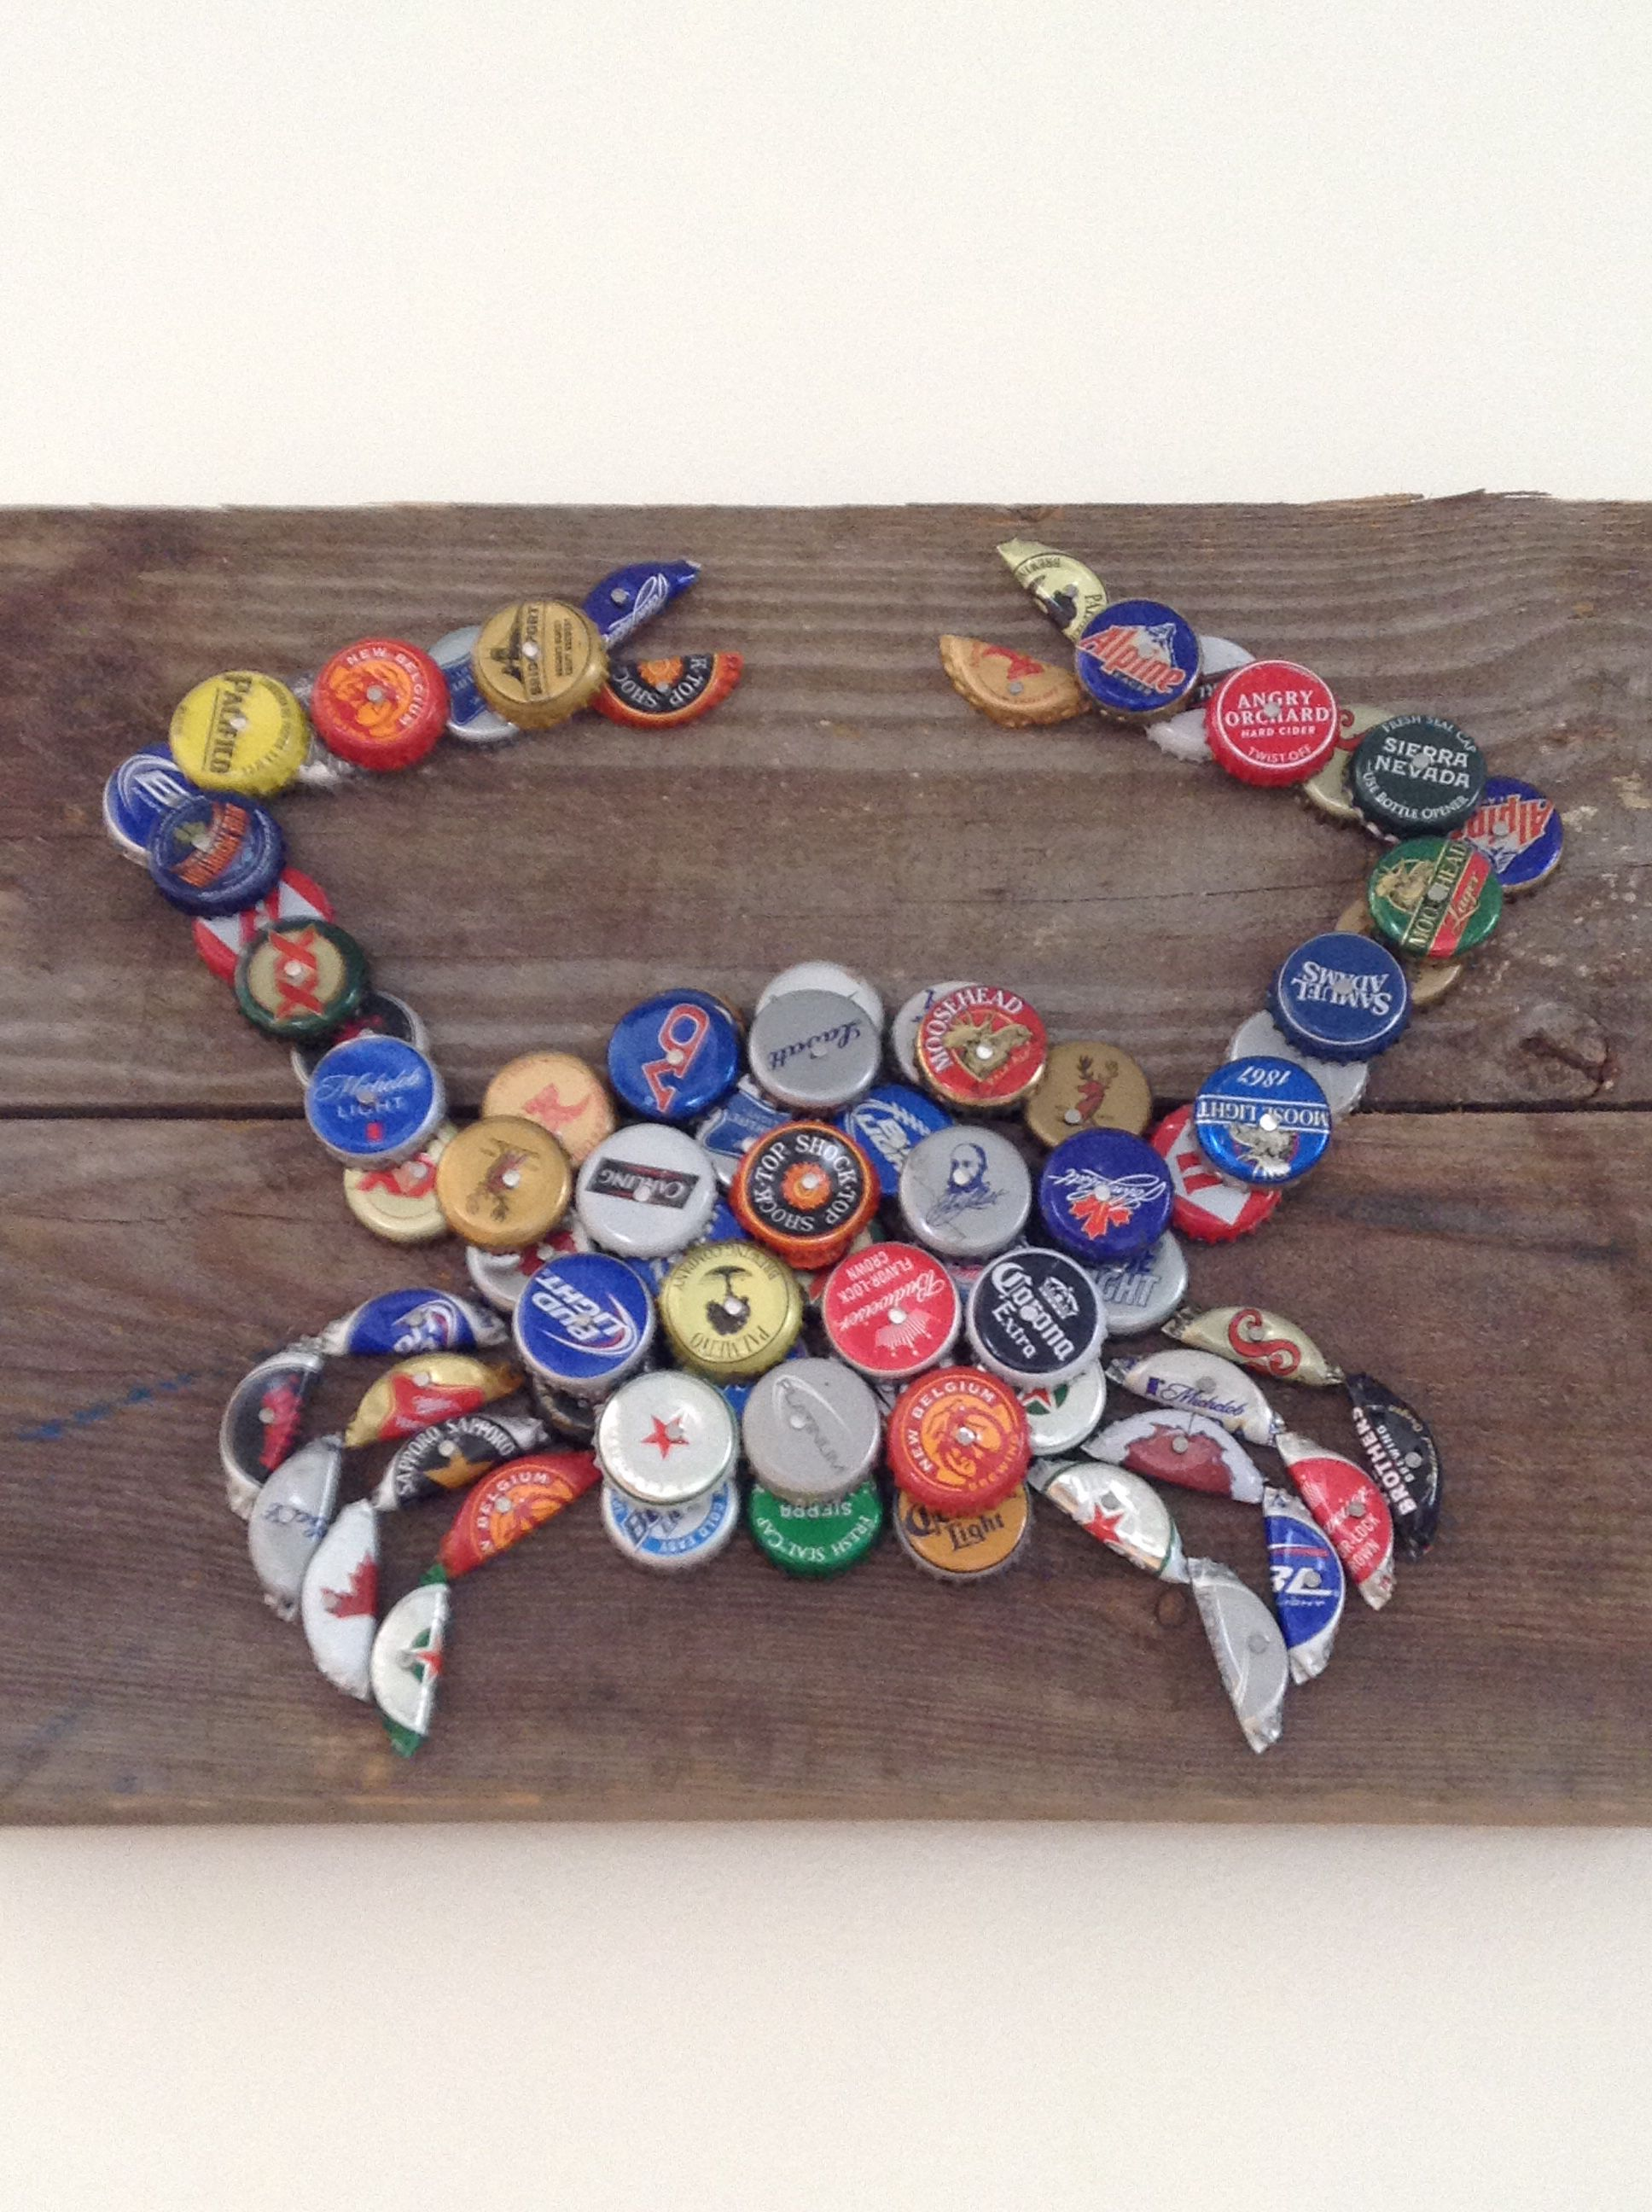 Cool diy beer bottle cap crab bottle cap ideas for What can i make with beer bottle caps